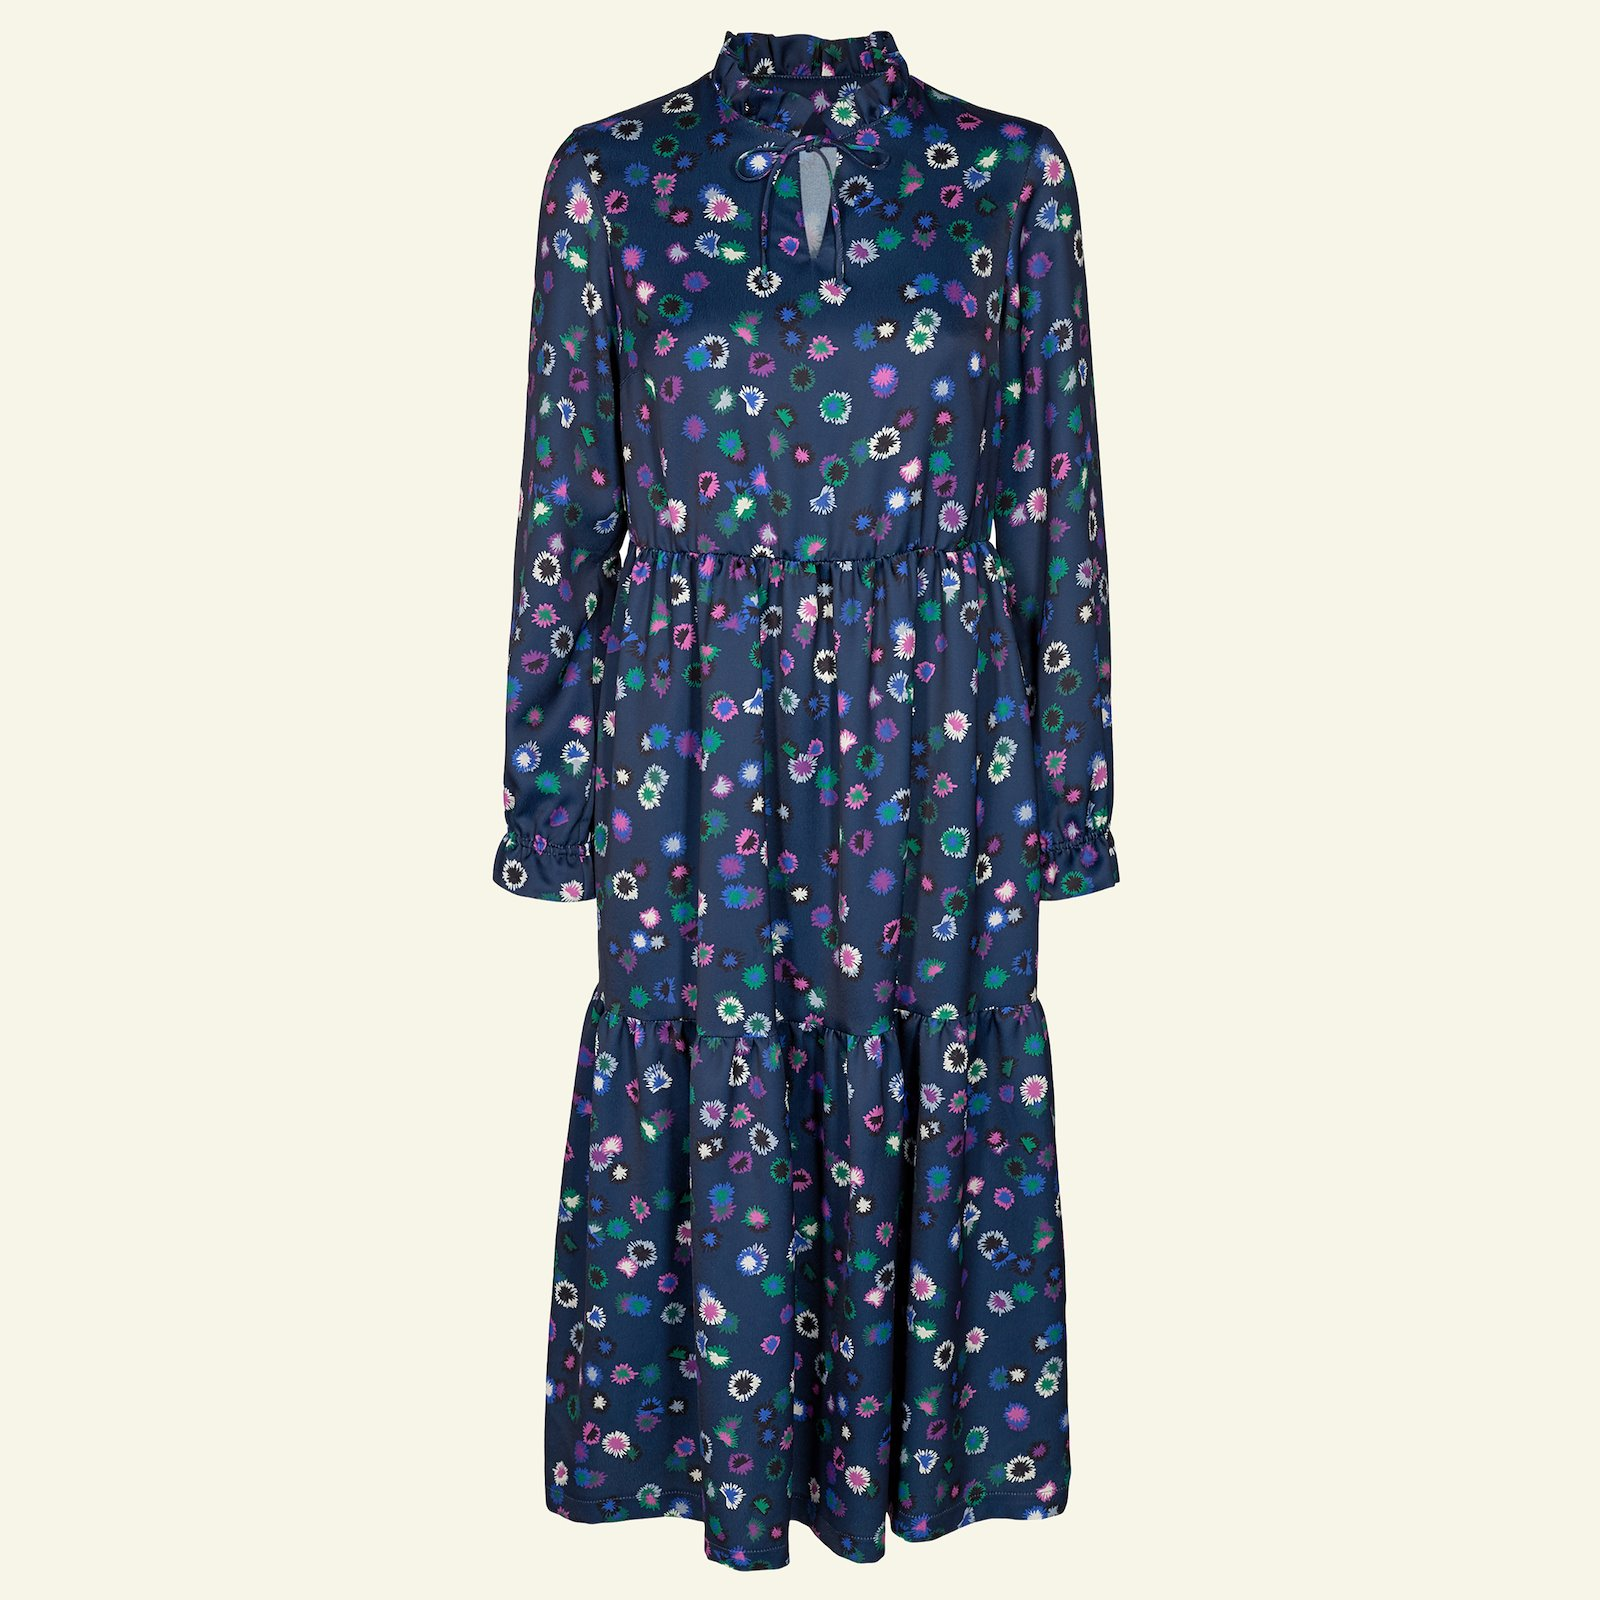 Woven crepe navy with flowers p23159_560255_sskit